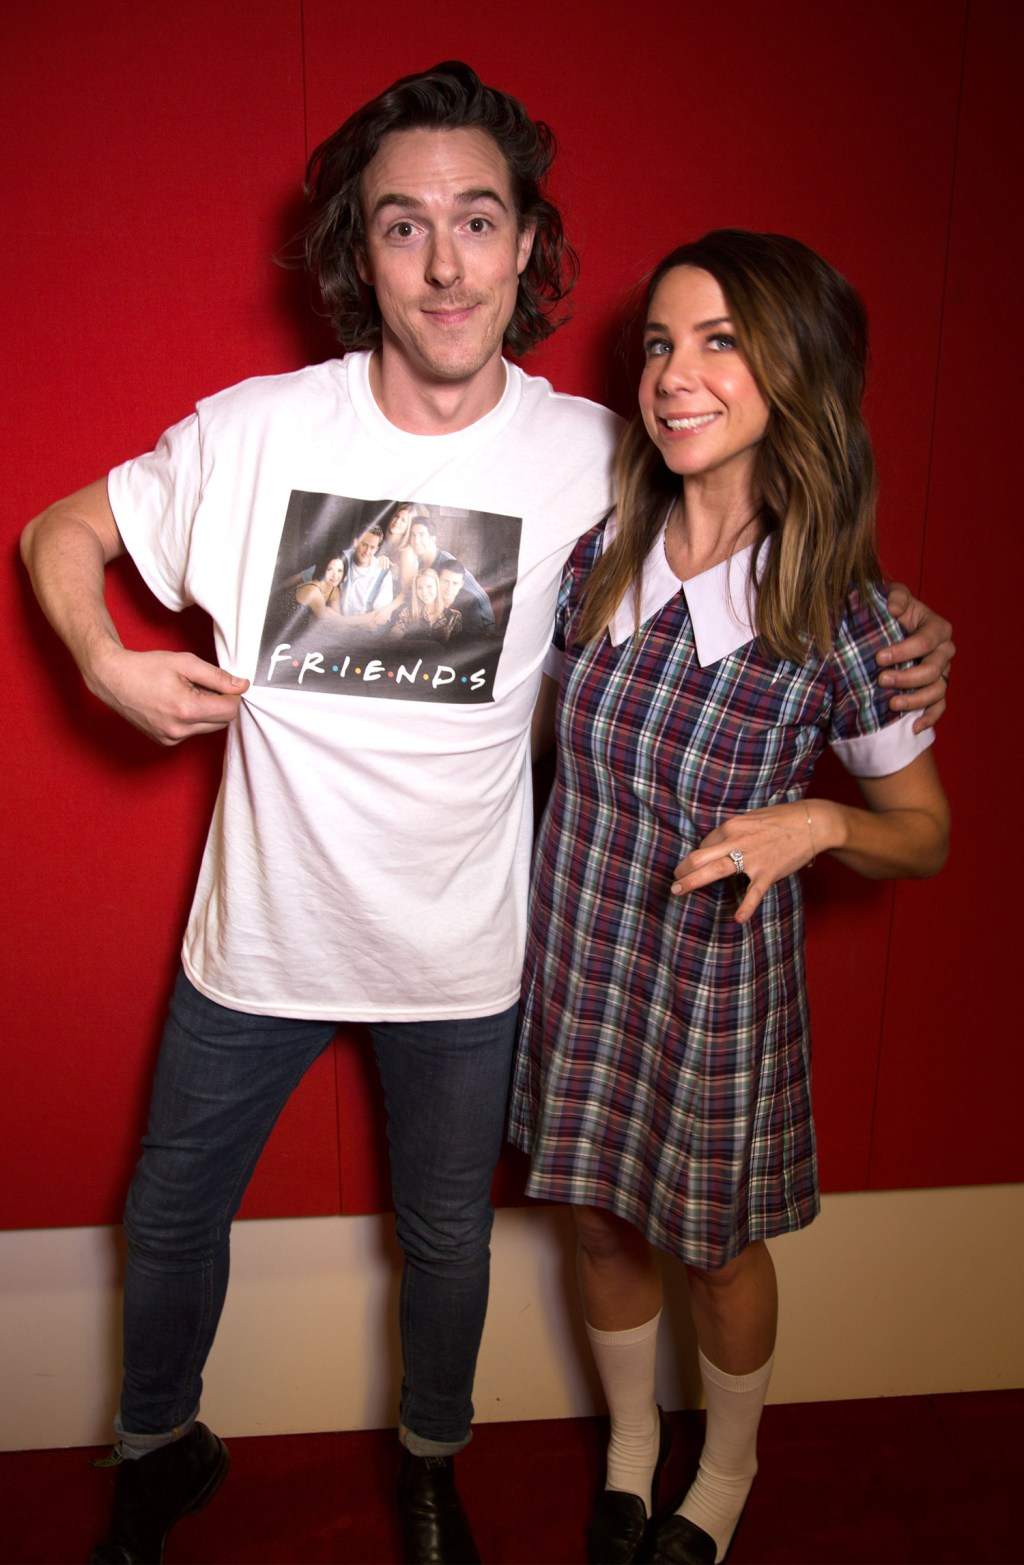 Tim Blackwell & Kate Ritchie in their 1996 outfits. Photo provided by Nova.